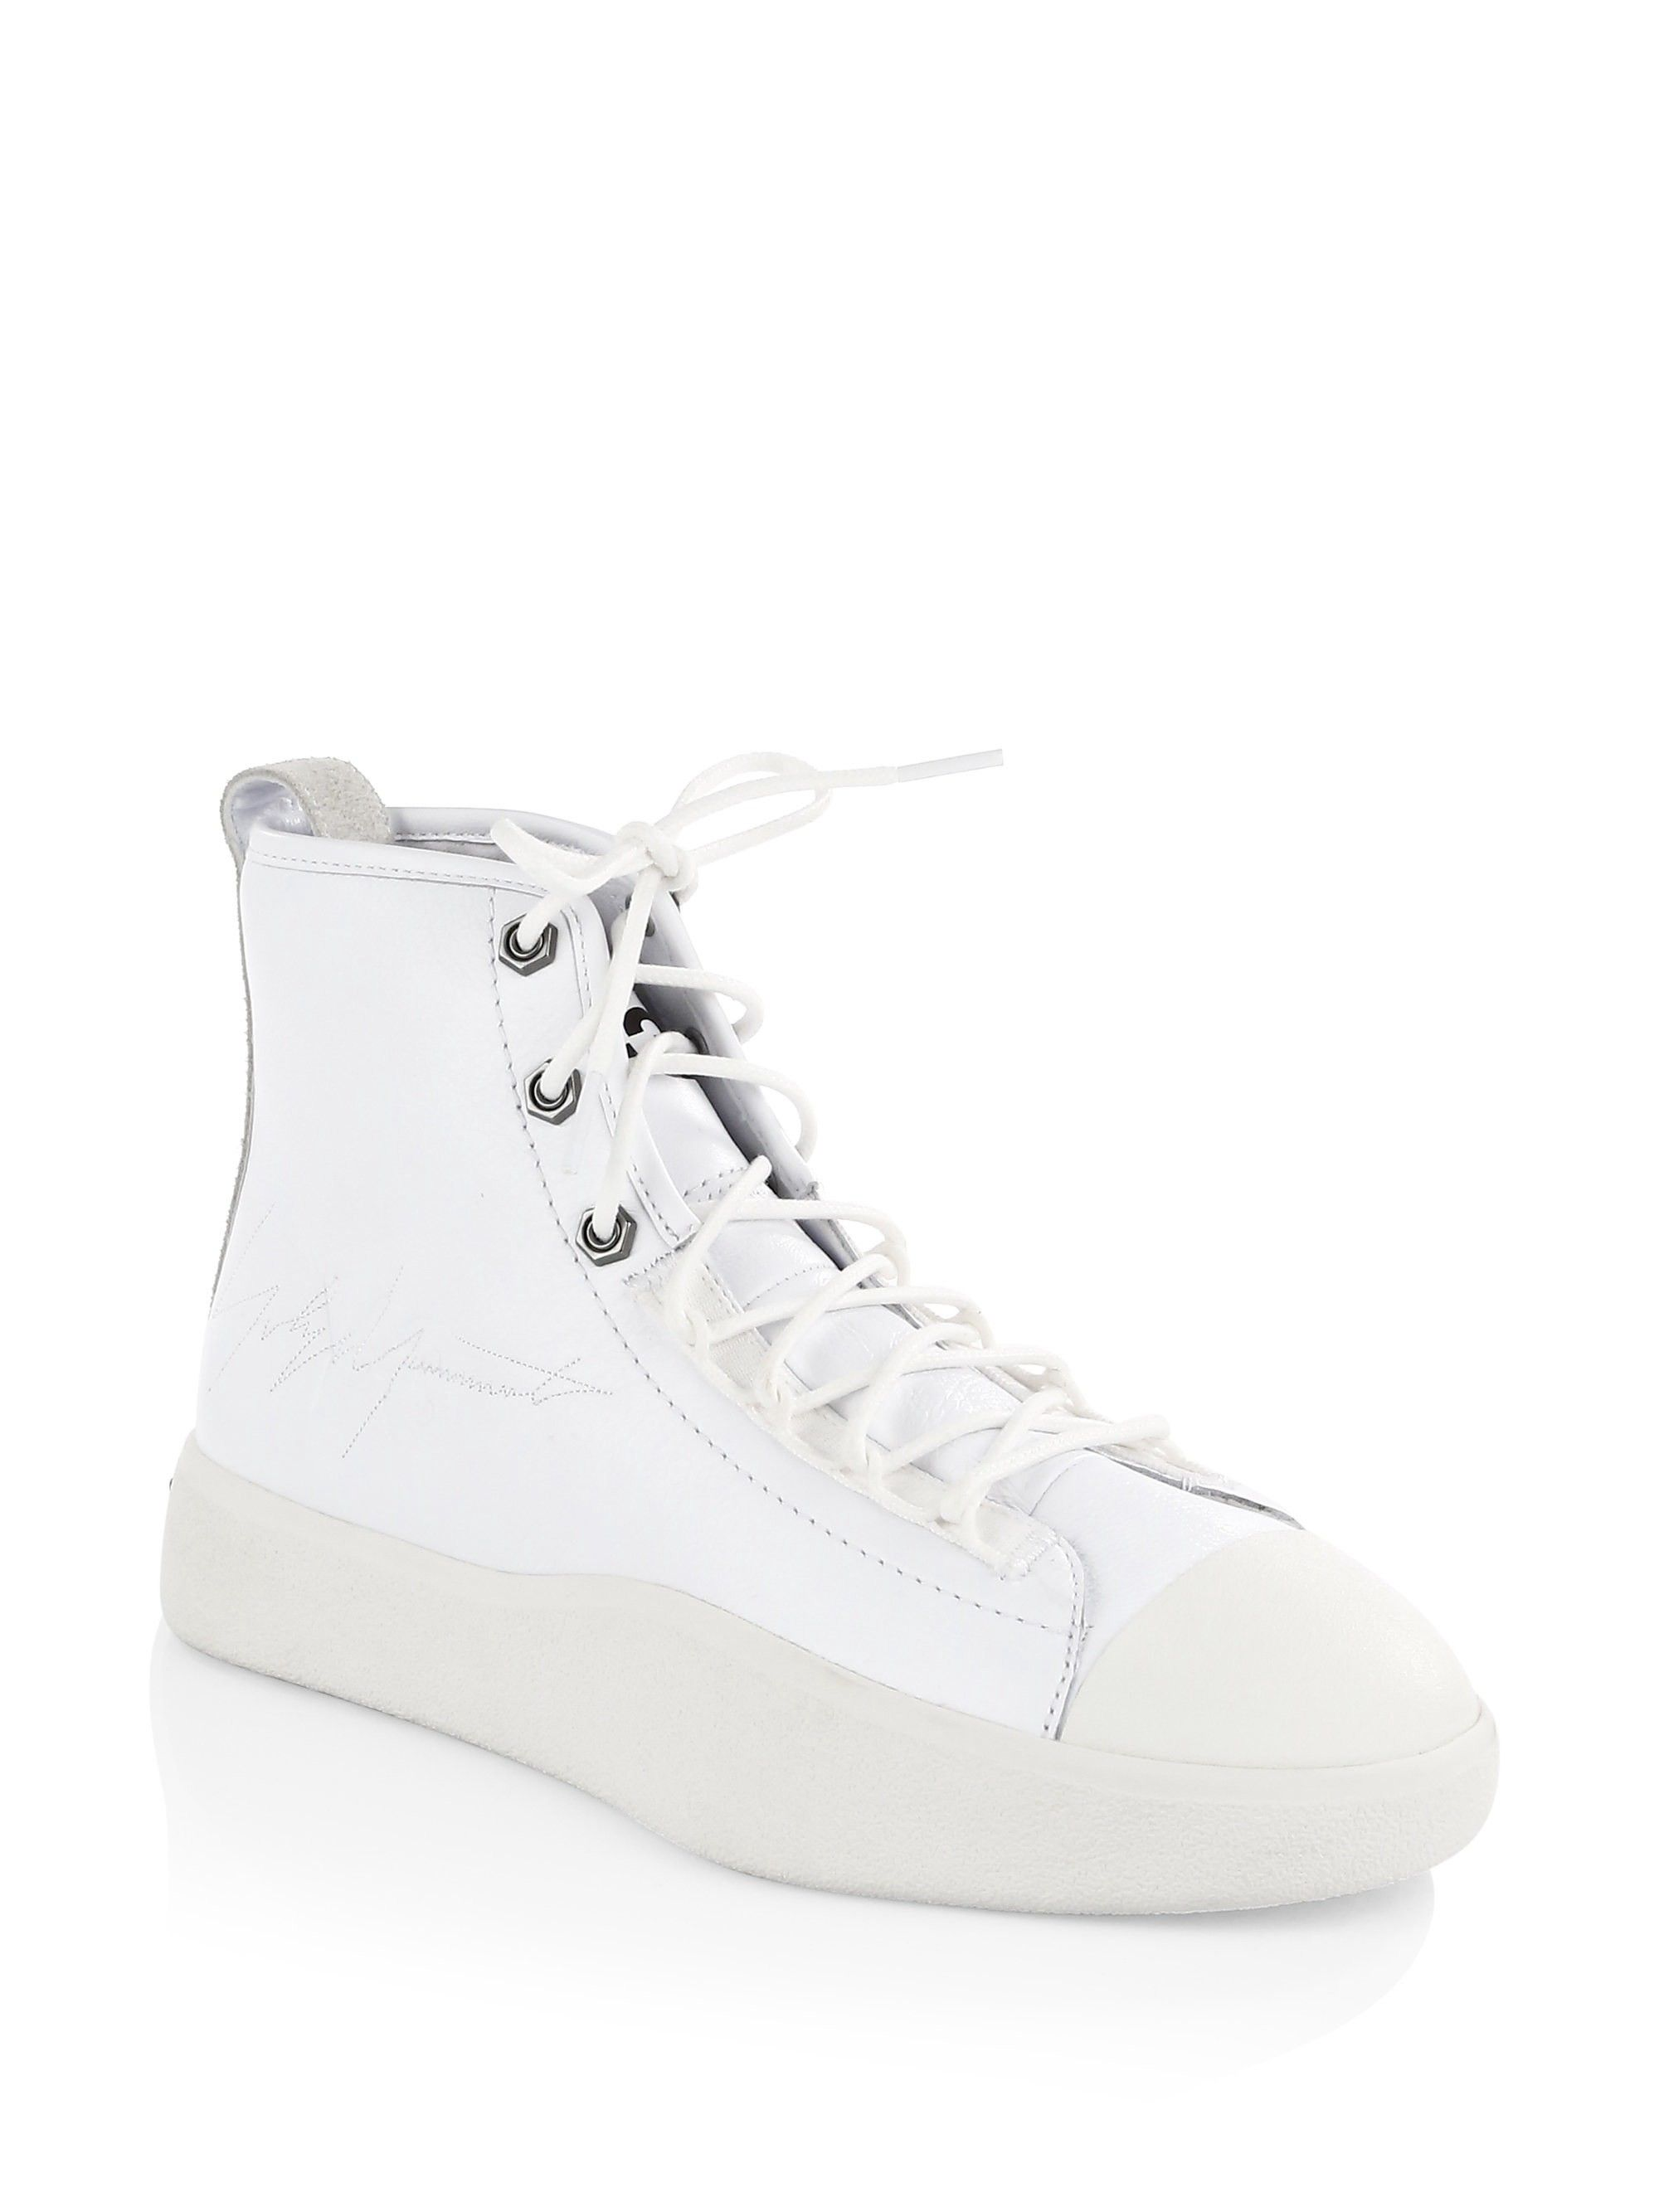 5f9134aae Y-3 Bashyo II High-Top Sneakers - White 10